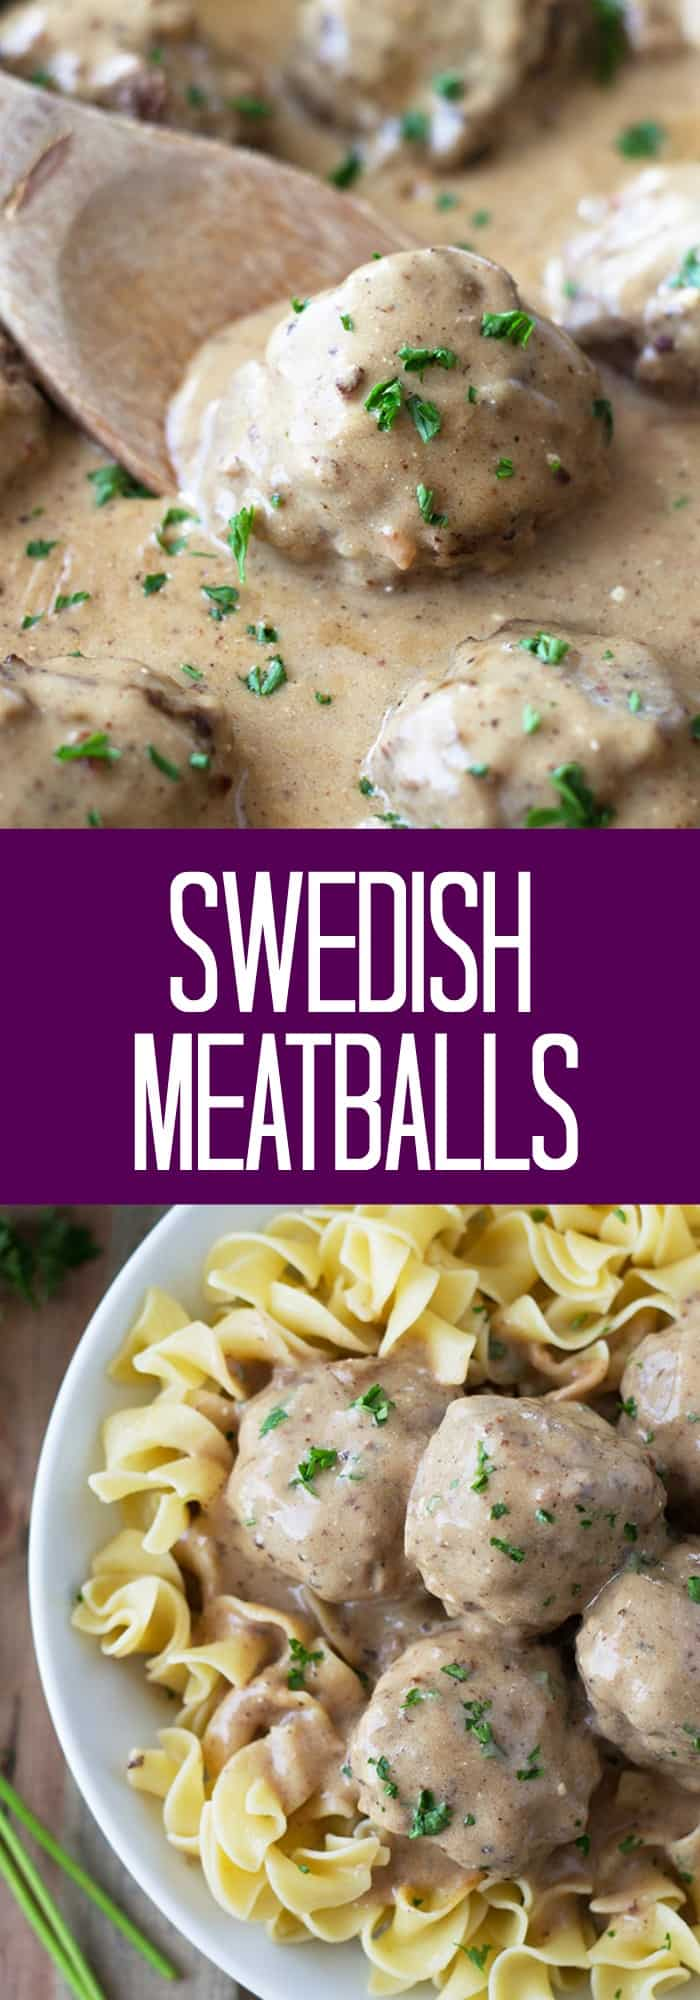 Swedish Meatballs- made with a combination of pork and beef then simmered in a creamy brown gravy. | countrysidecravings.com